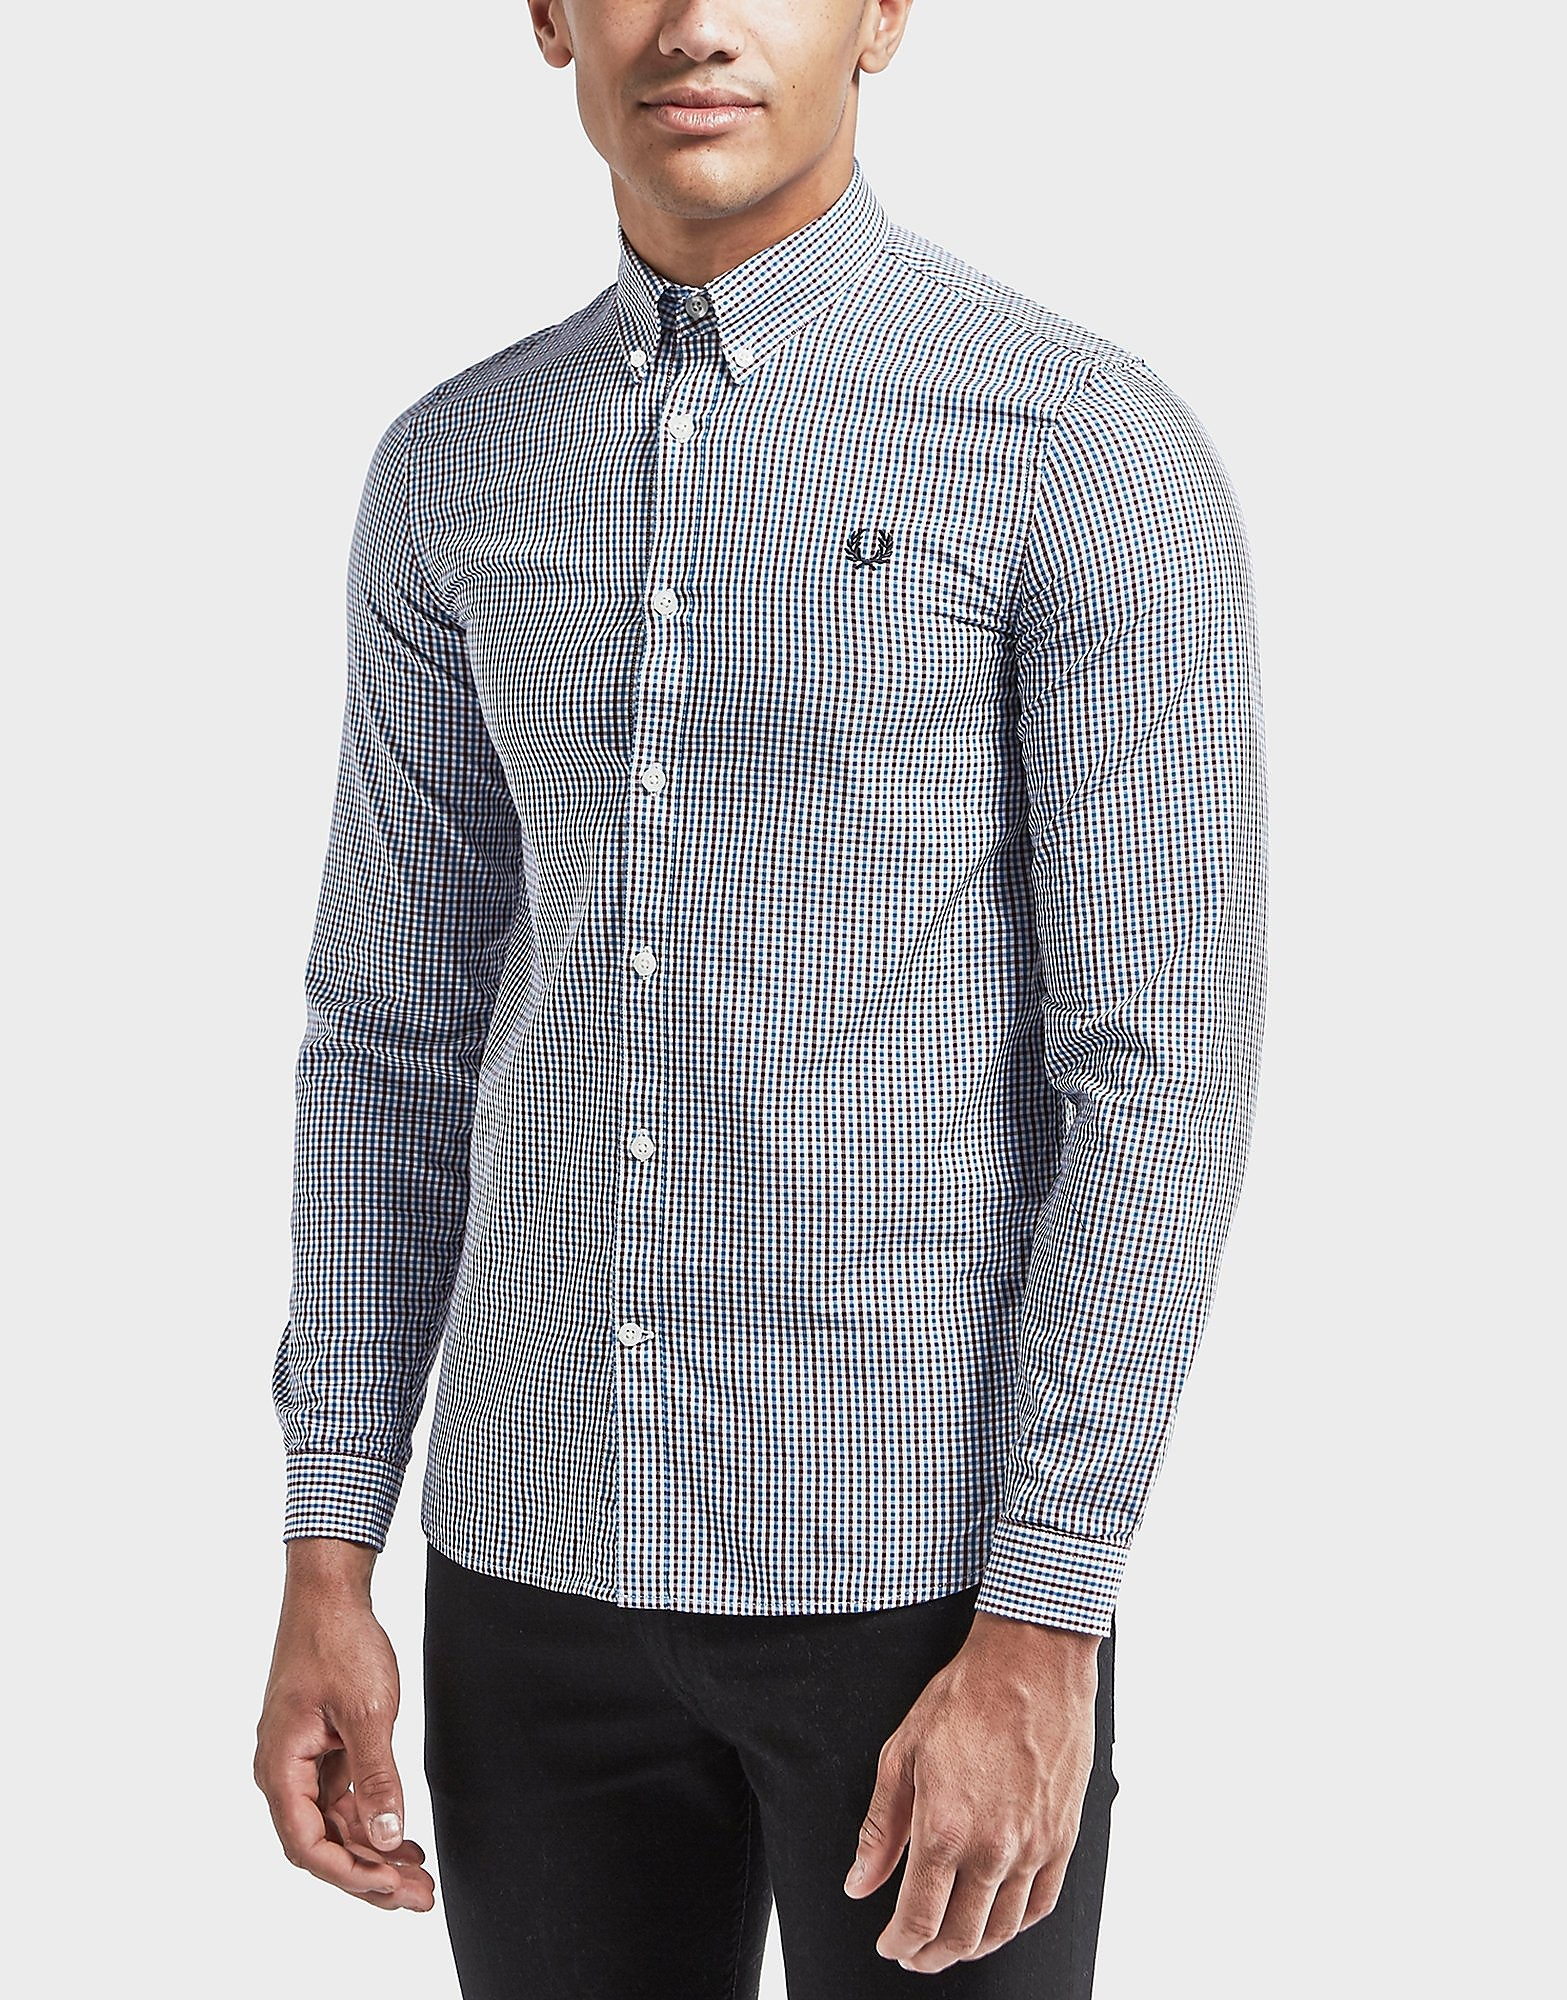 Fred Perry 3 Colour Gingham Check Shirt